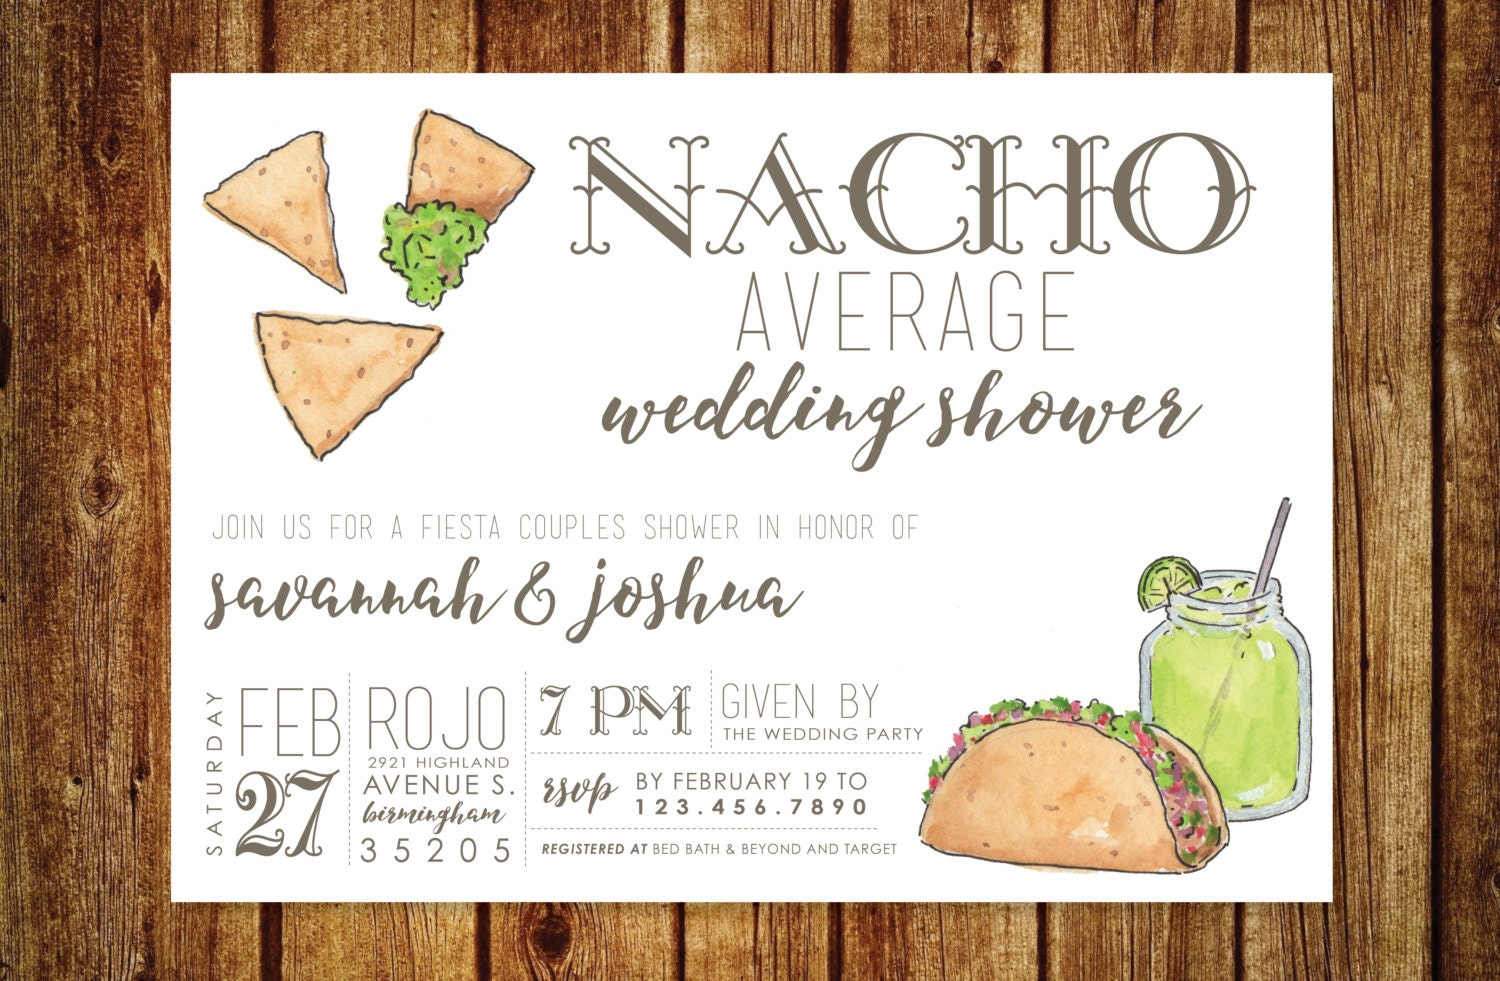 Nacho Average Wedding Shower Invitation Fiesta Wedding